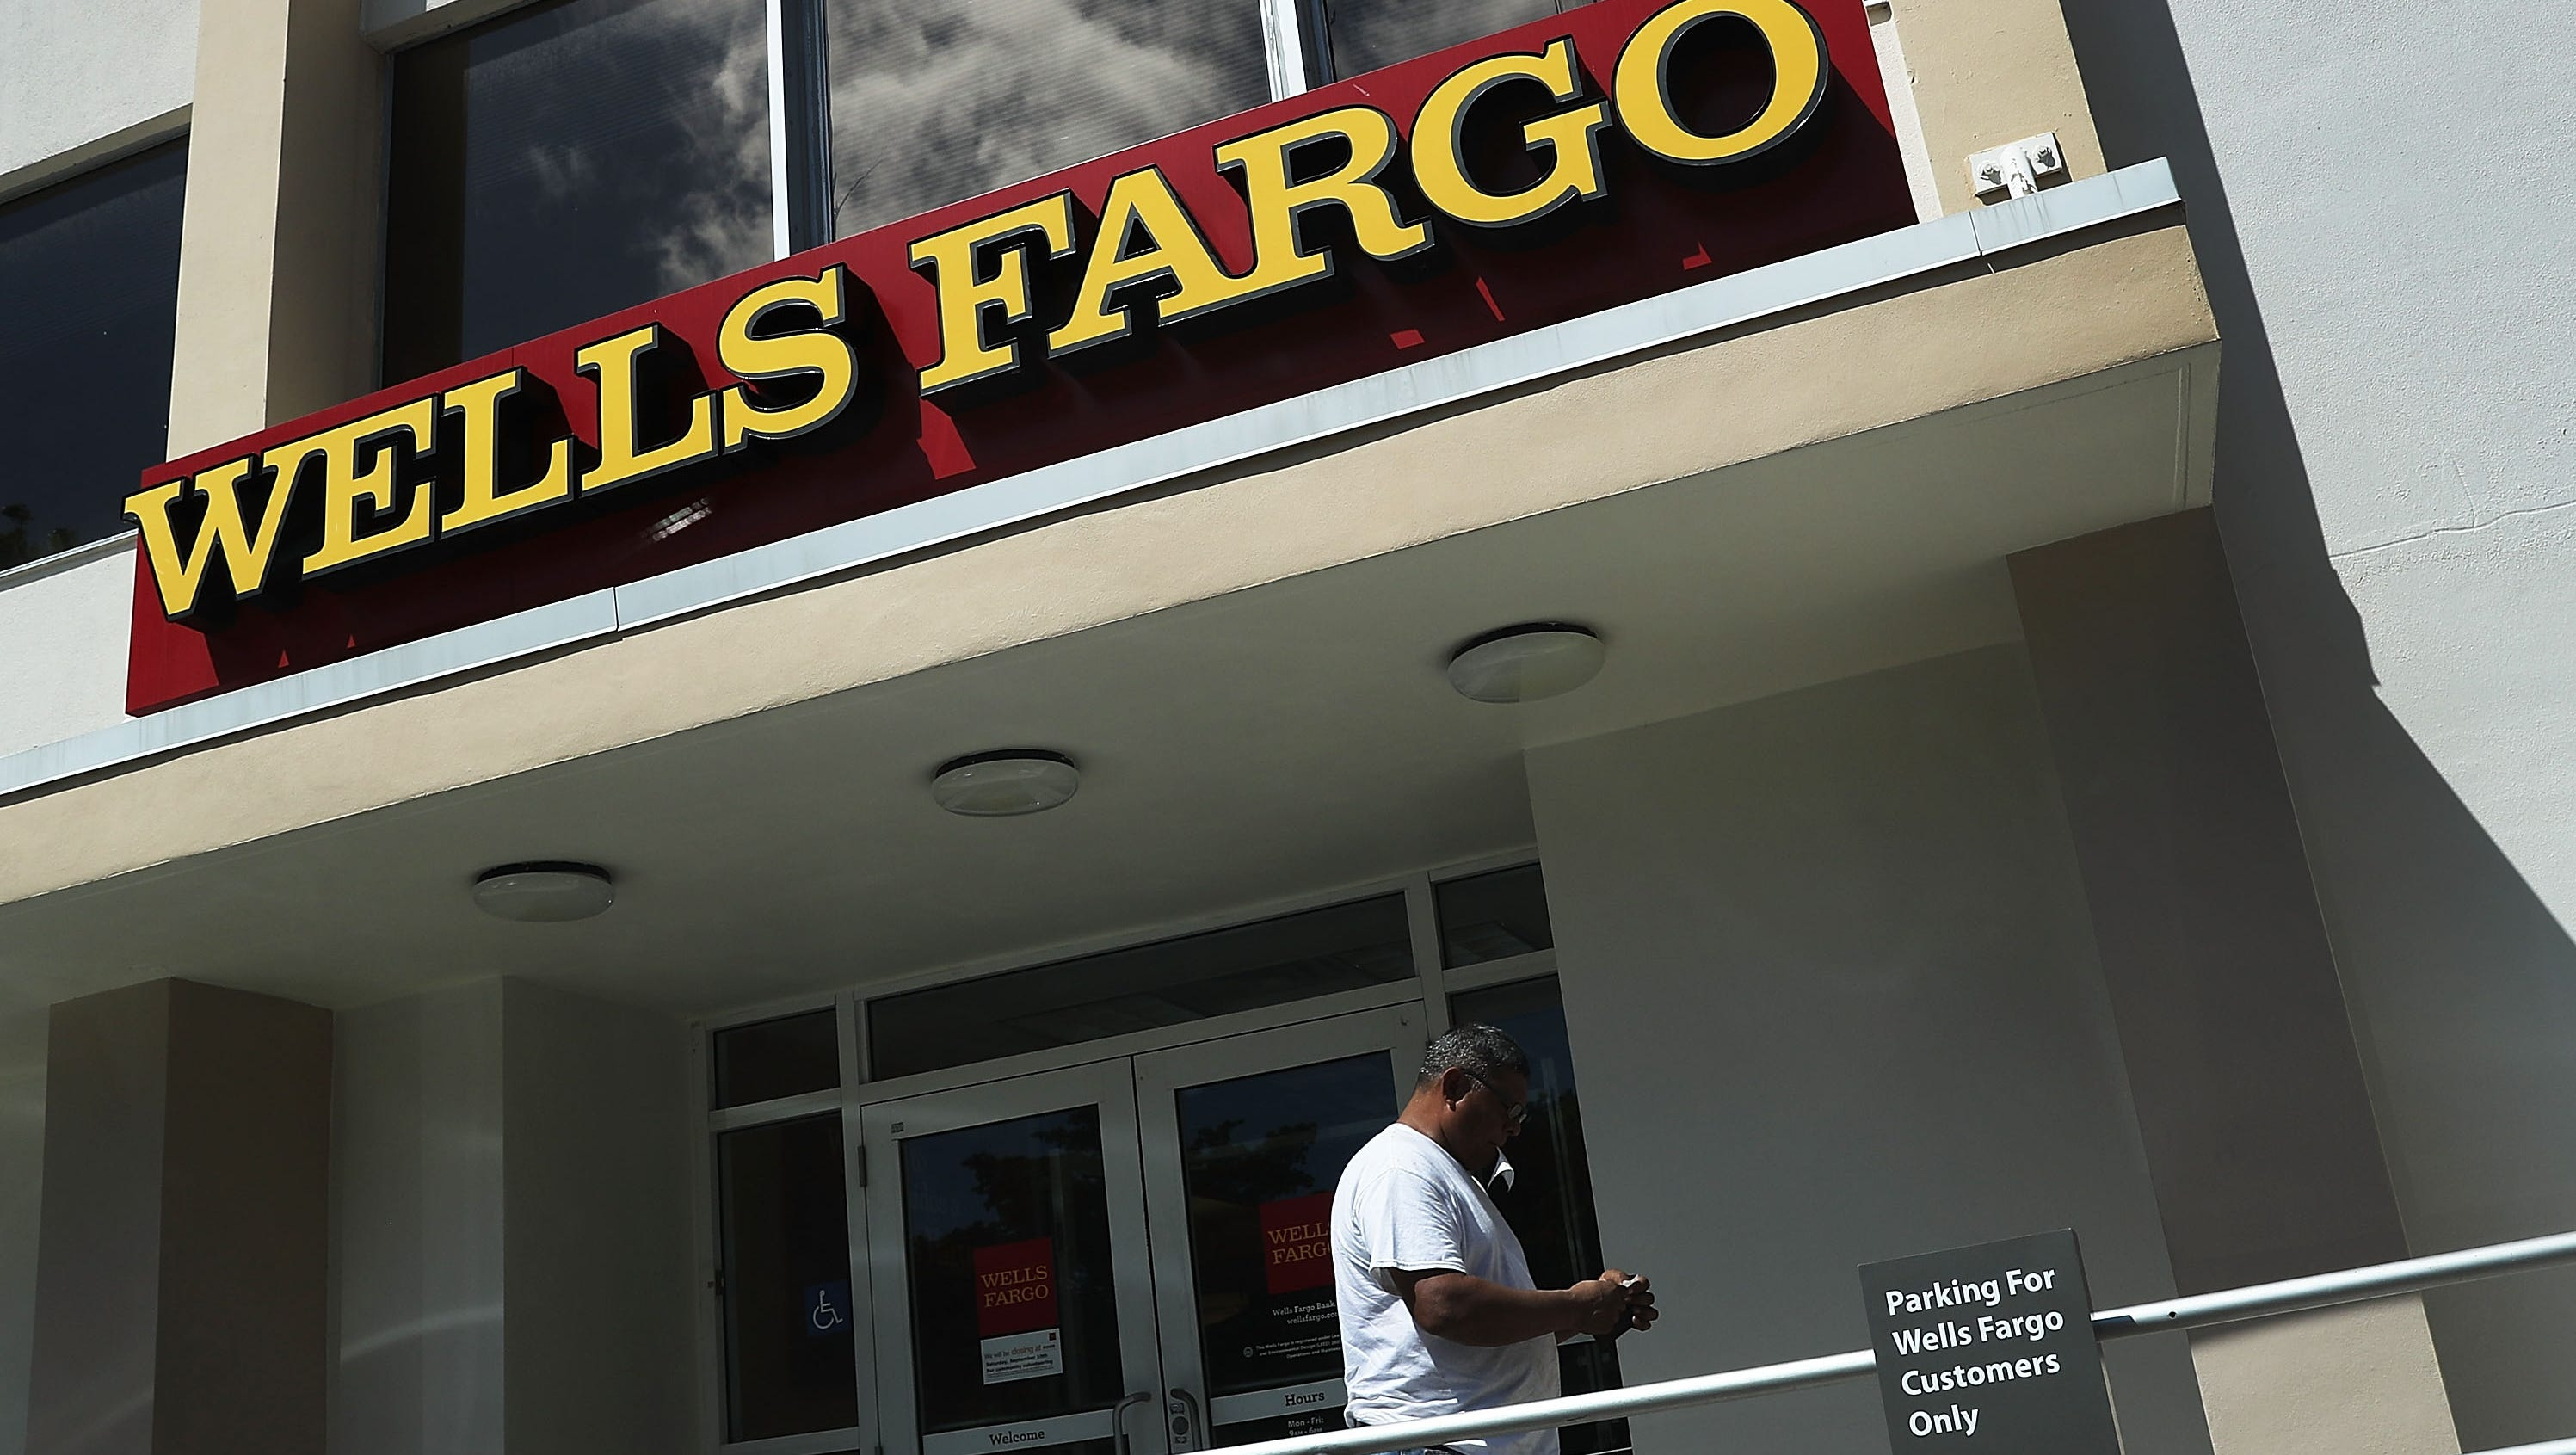 Wells Fargo Separates Ceo And Chair Jobs